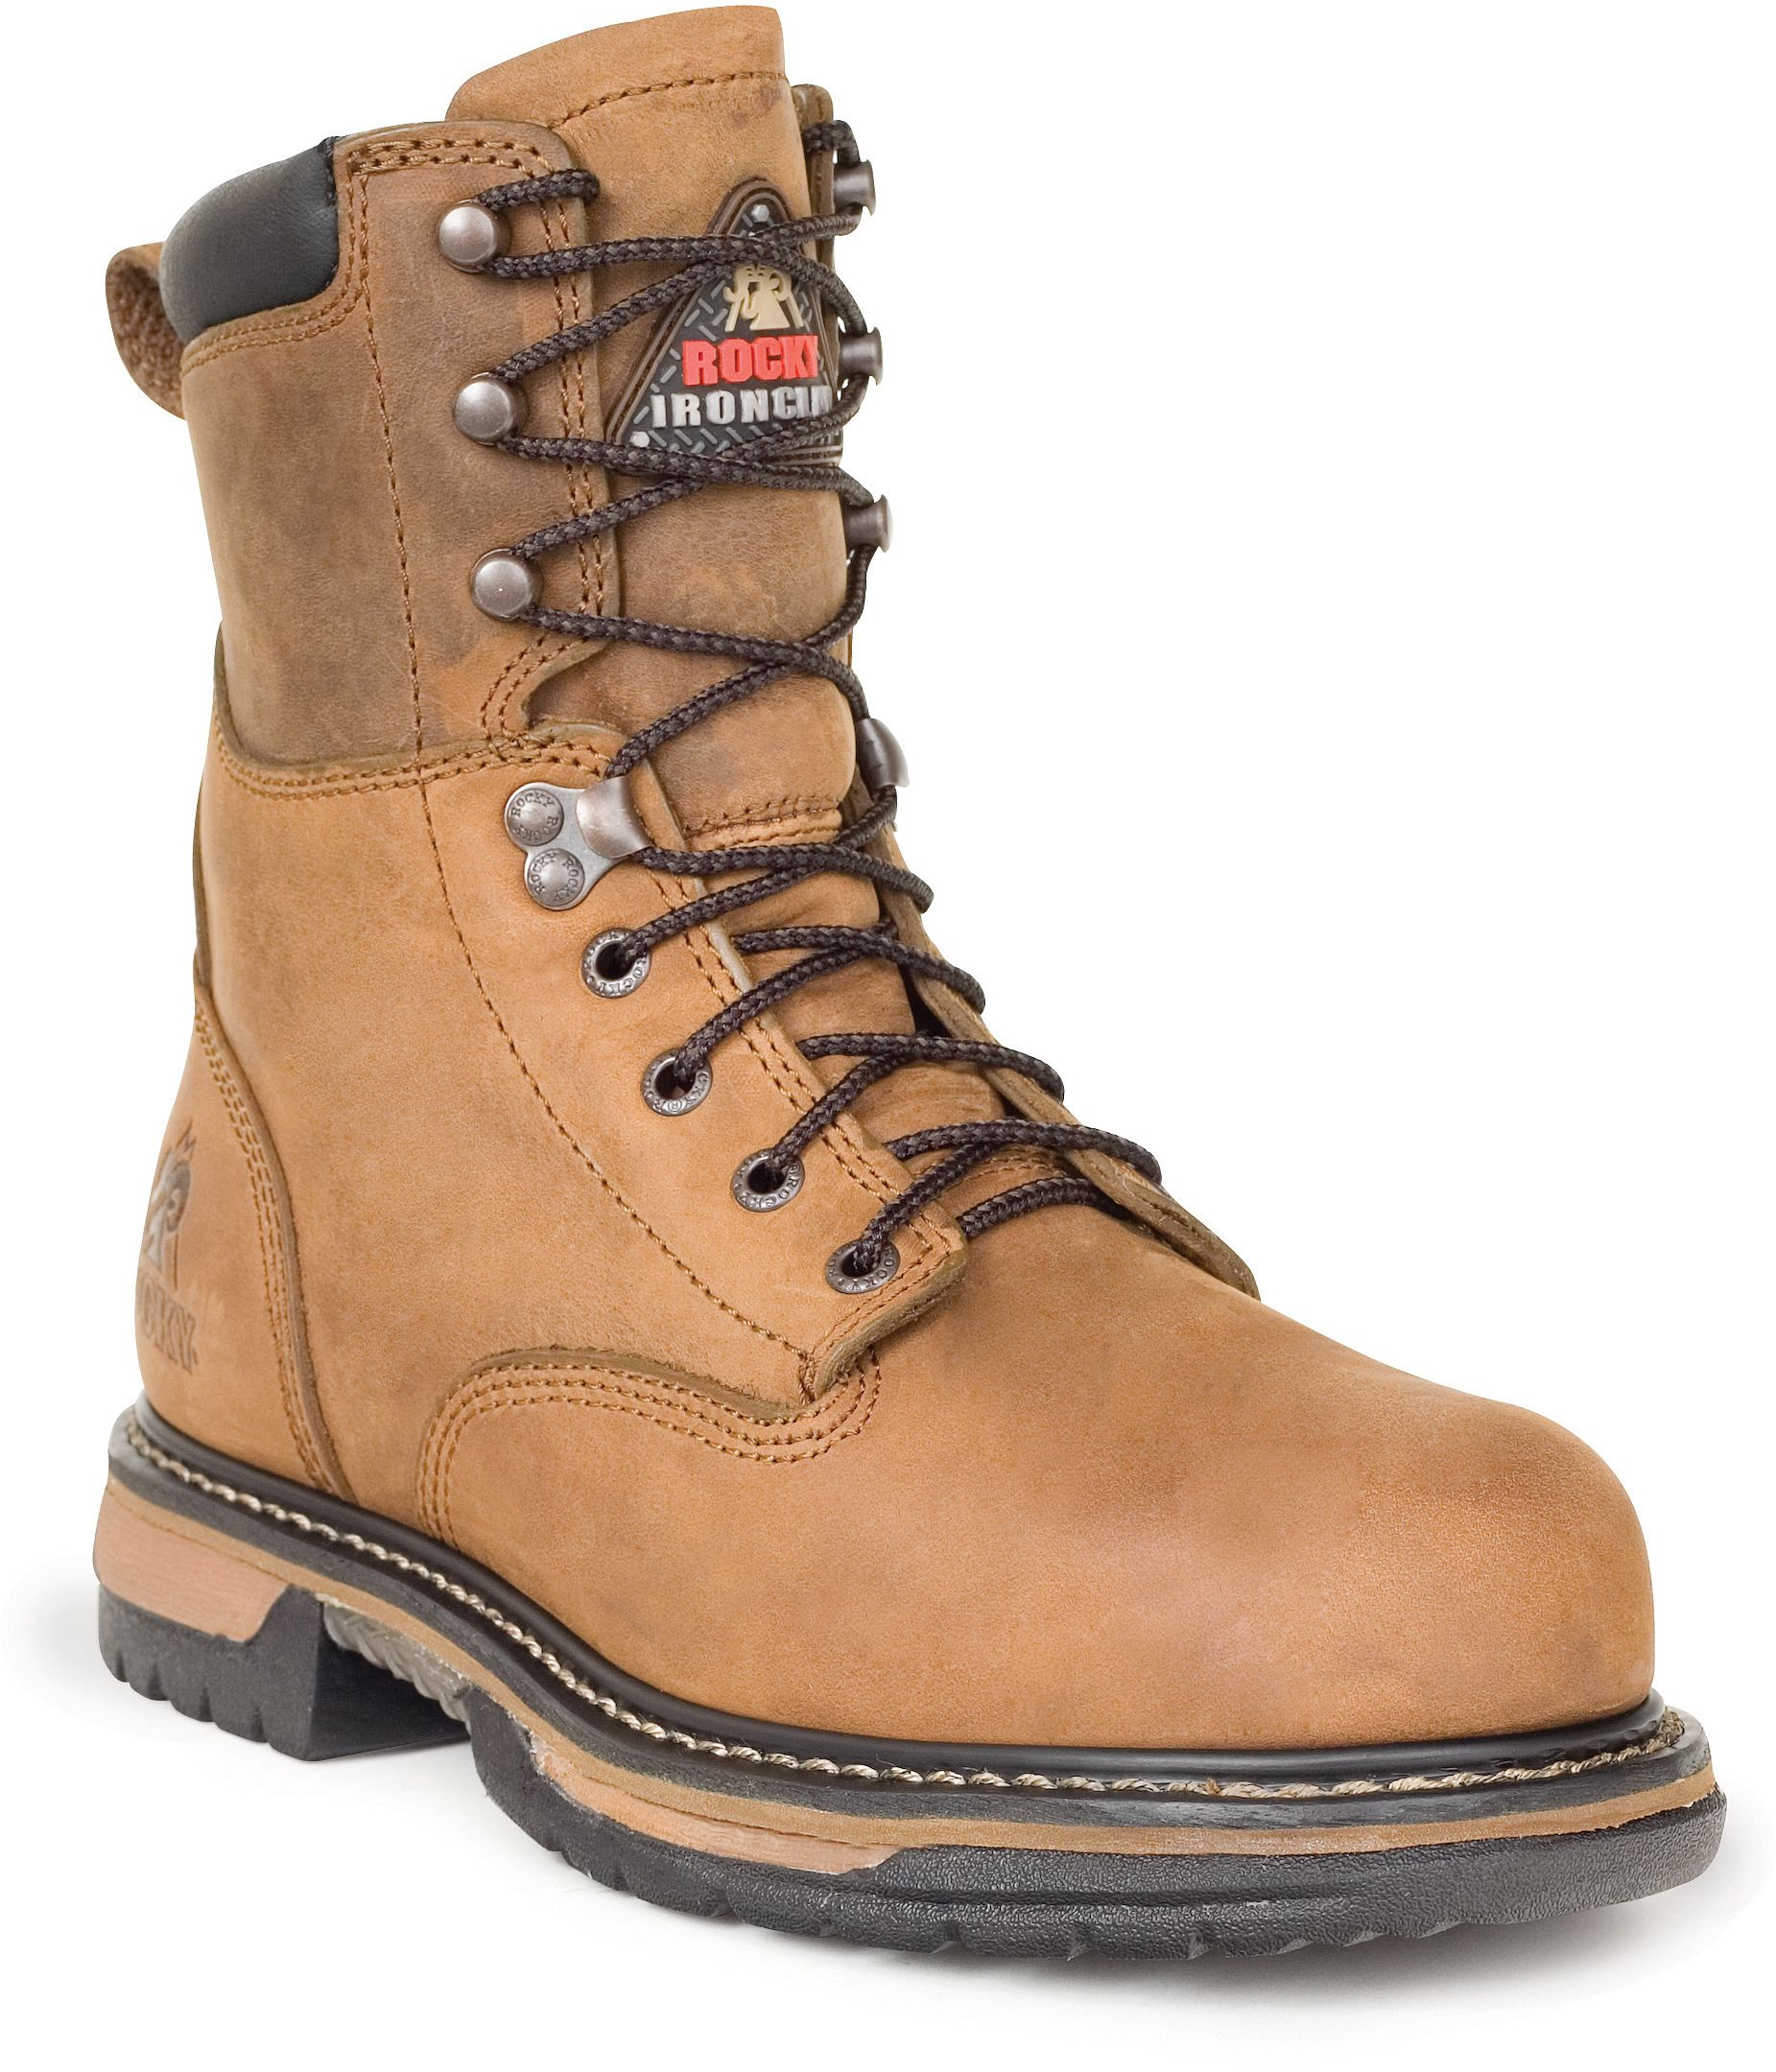 684f33d1526 6692 Men's Safety Steel Ironclad Rocky Boots - Brown | Rocky Boots ...